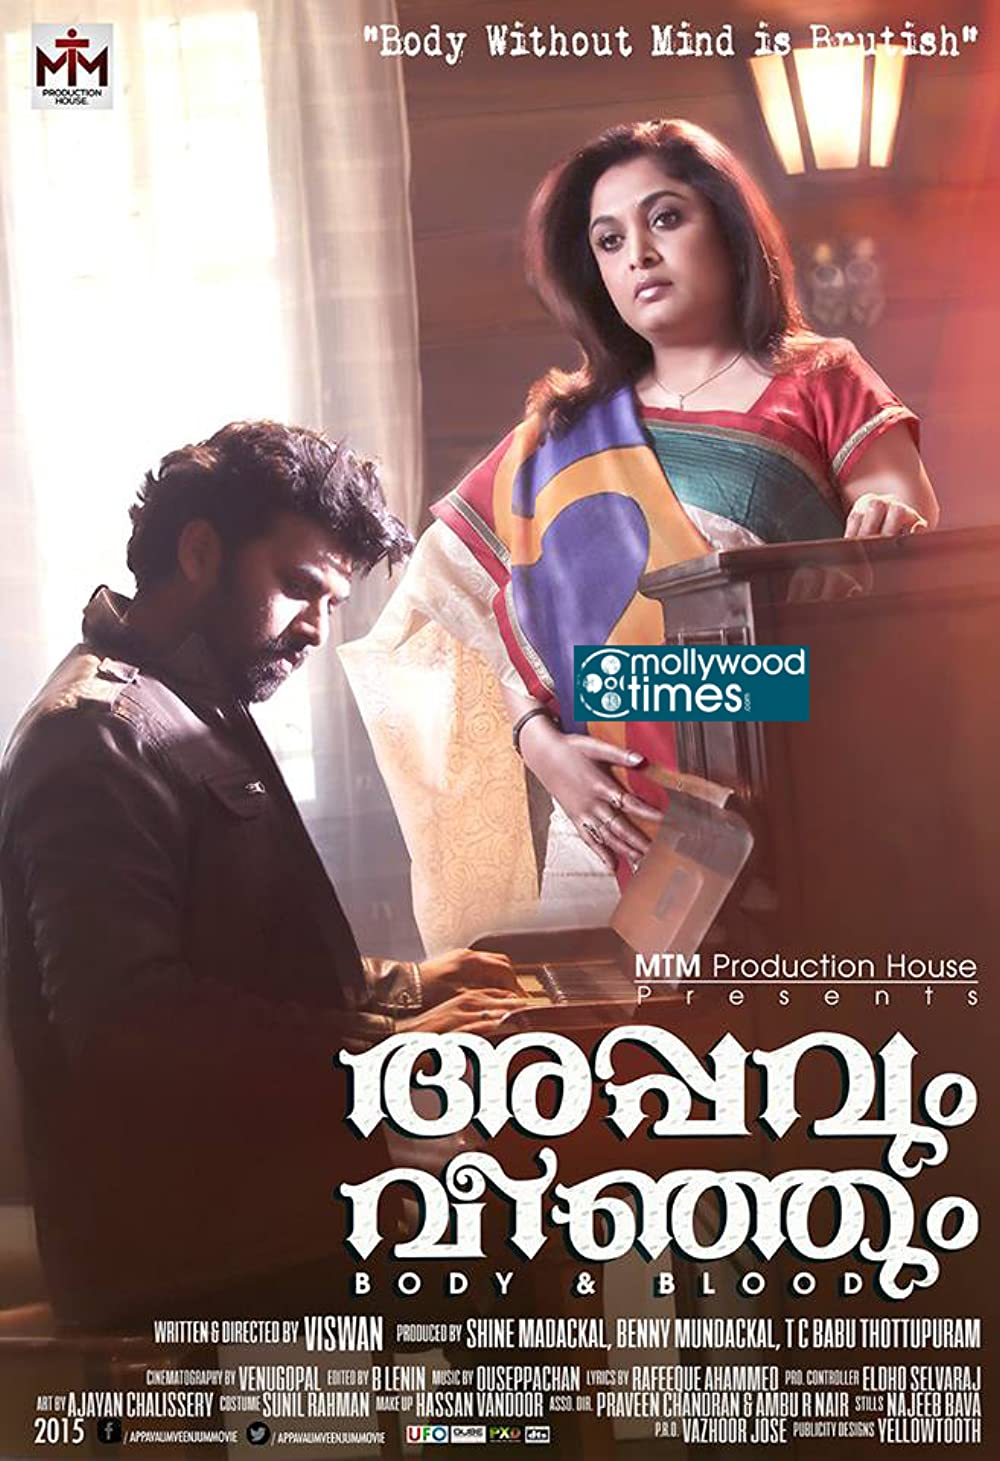 Jism Aur Khoon (Appavum Veenjum) 2021 Hindi Dubbed 302MB HDRip Download